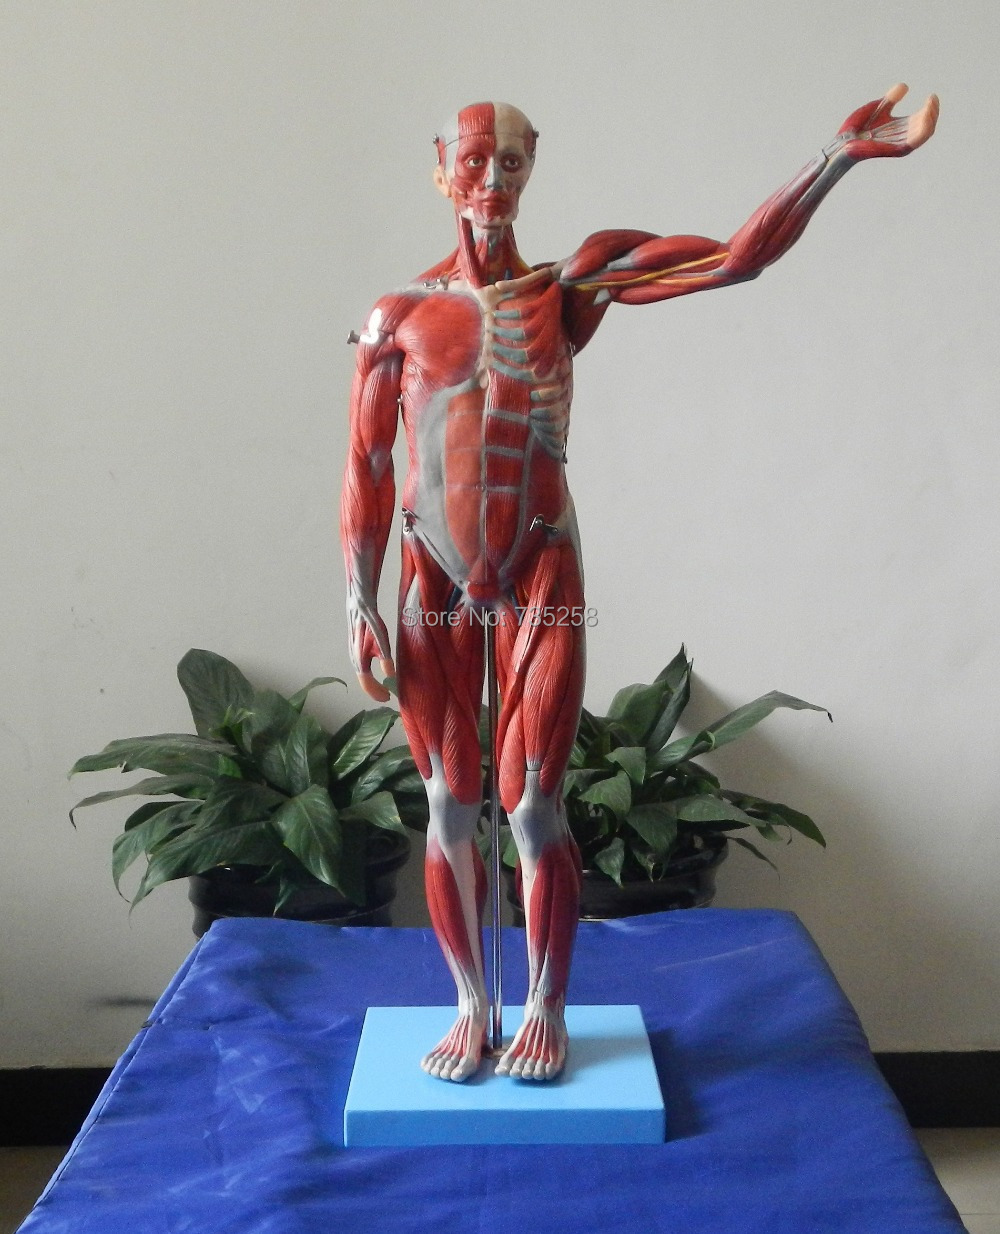 ISO Certification Body Muscles Anatomical Model,78cm Human Anatomy Model,Human Organ Anatomical Model mini human uterus assembly model assembled human anatomy model gift for children